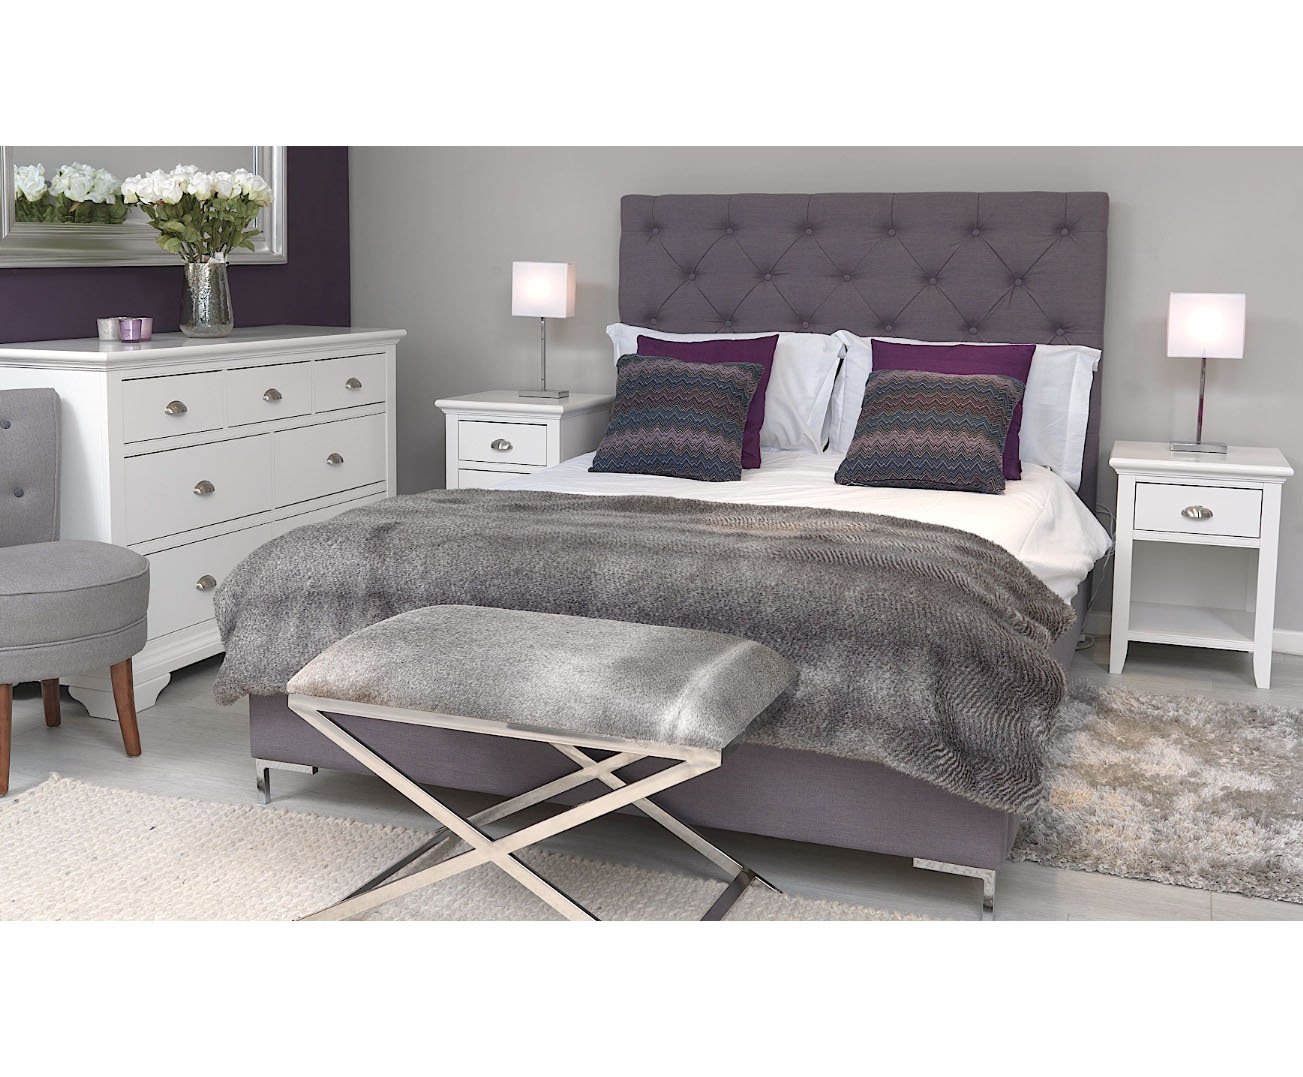 MERIBEL DOUBLE BED-29948